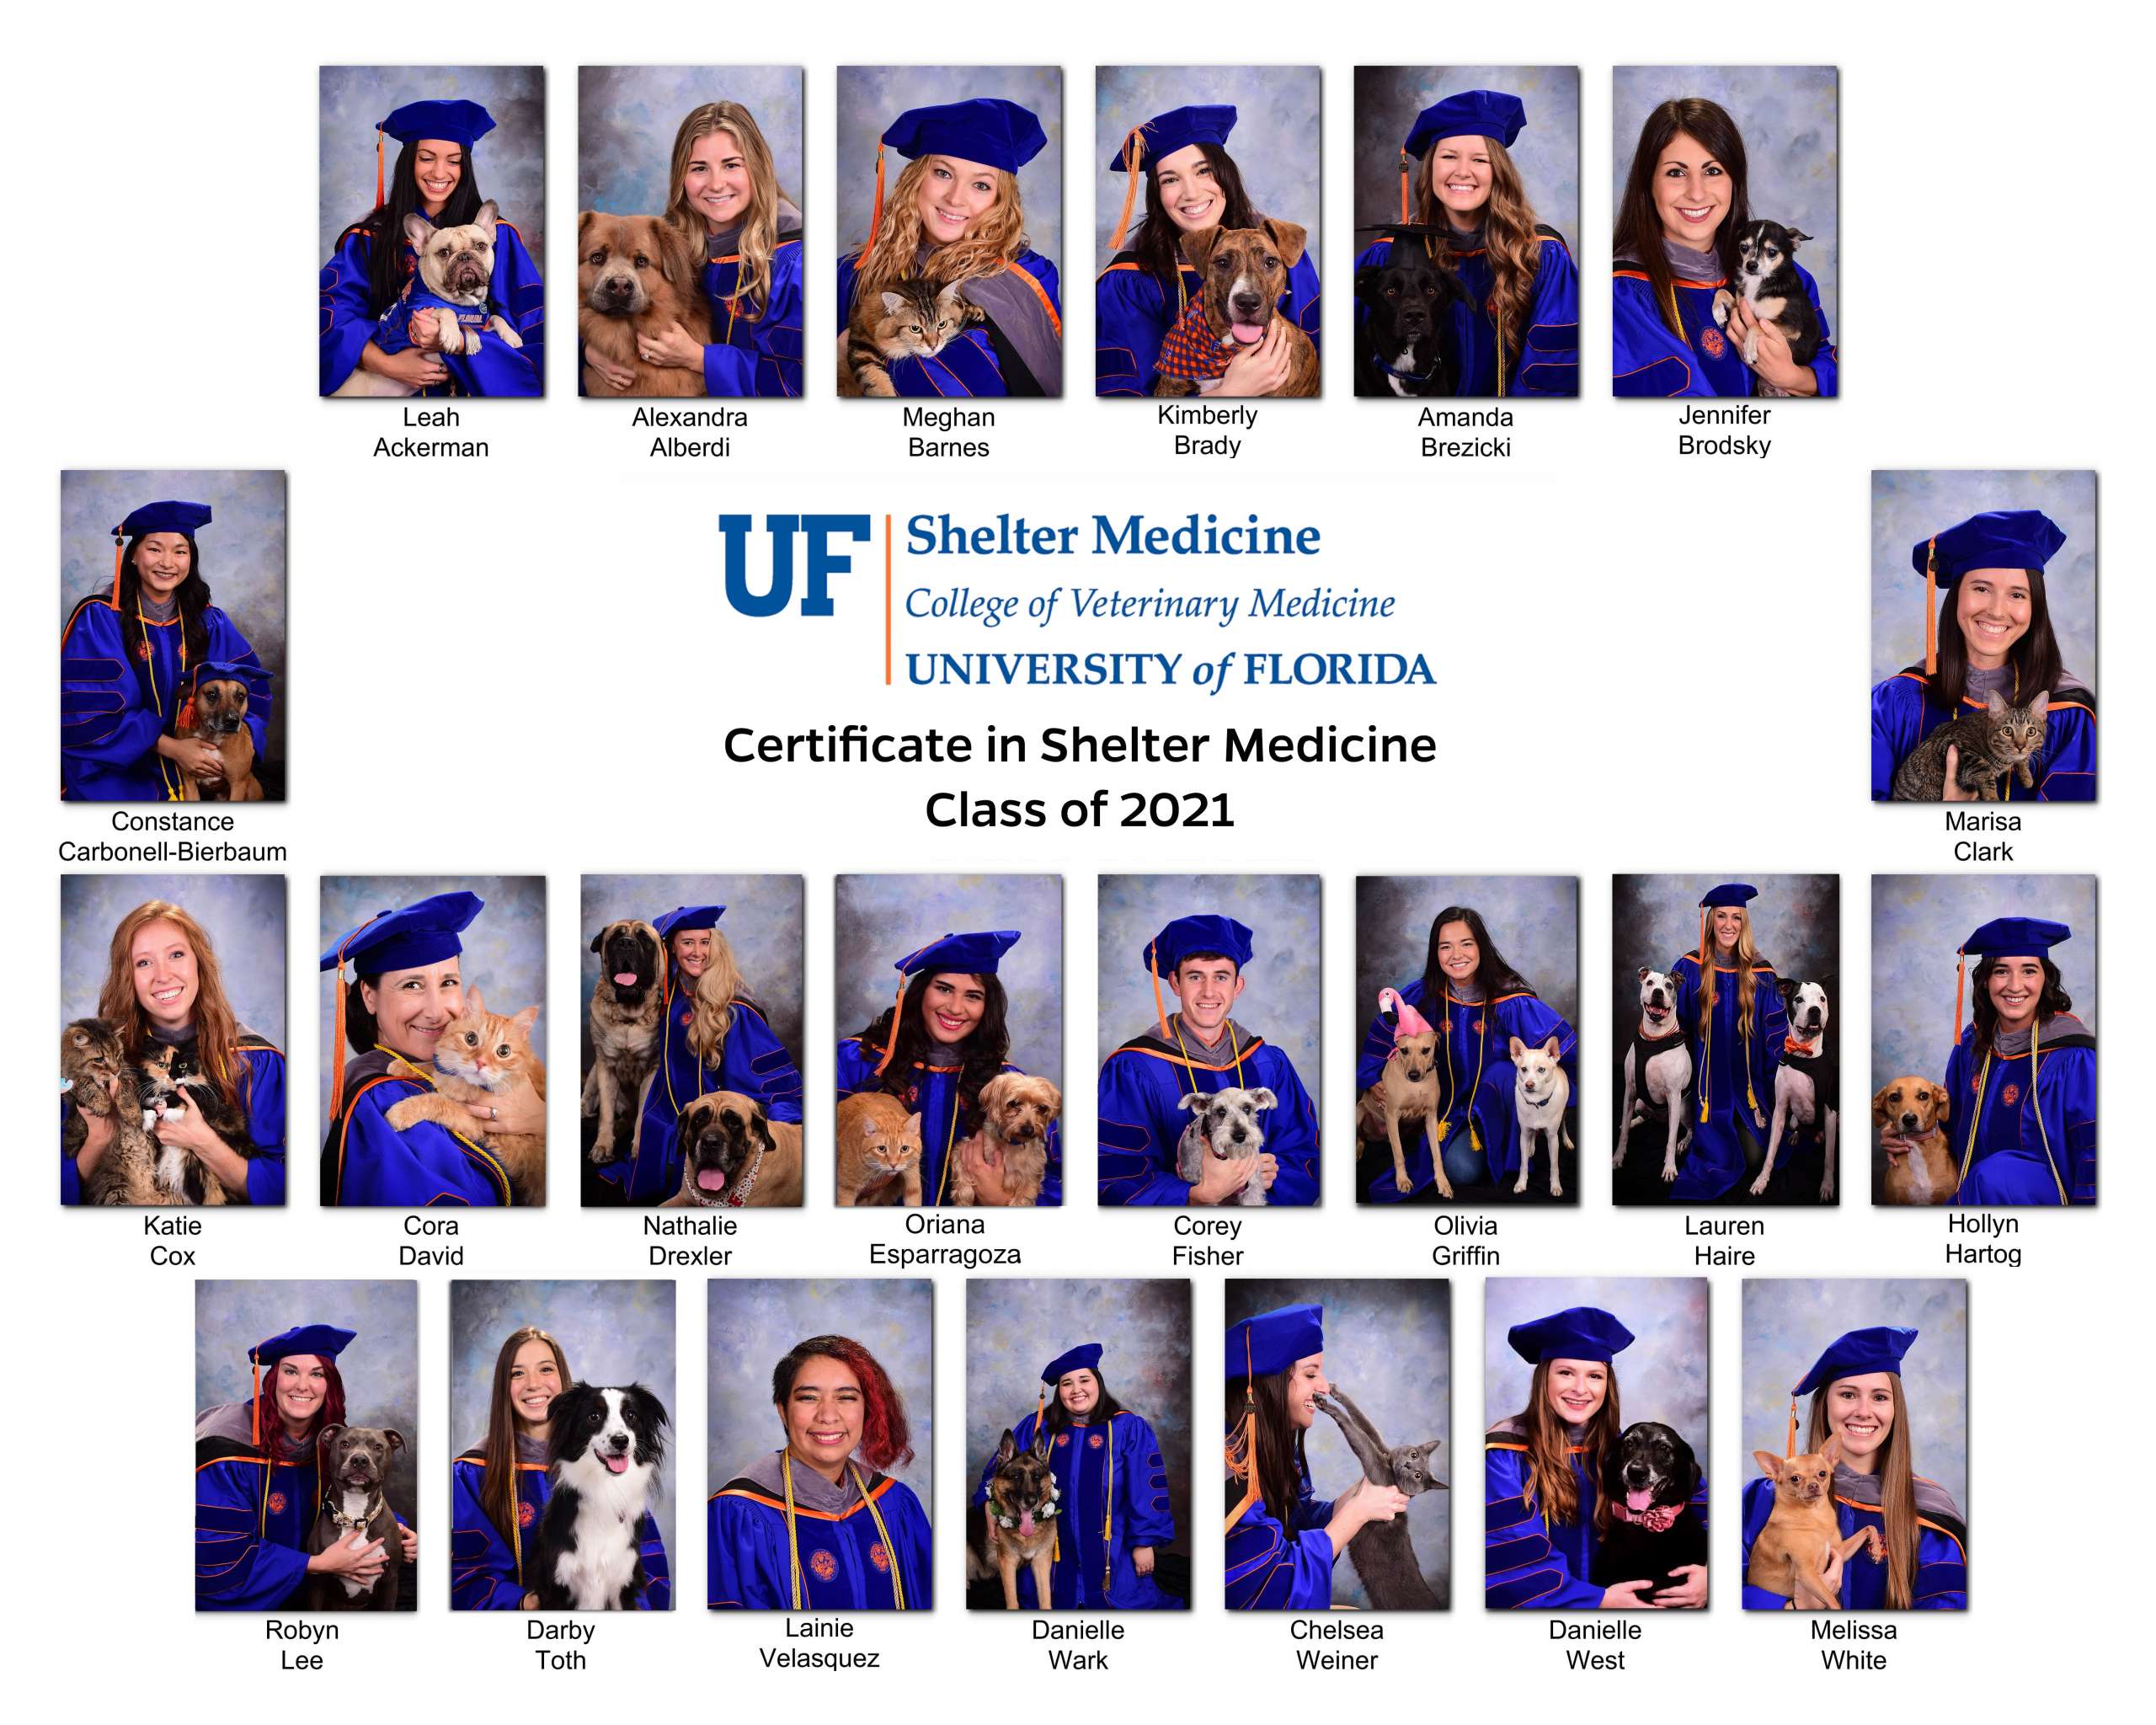 Certificate in Shelter Medicine Class of 2021 at the University of Florida College of Veterinary Medicine